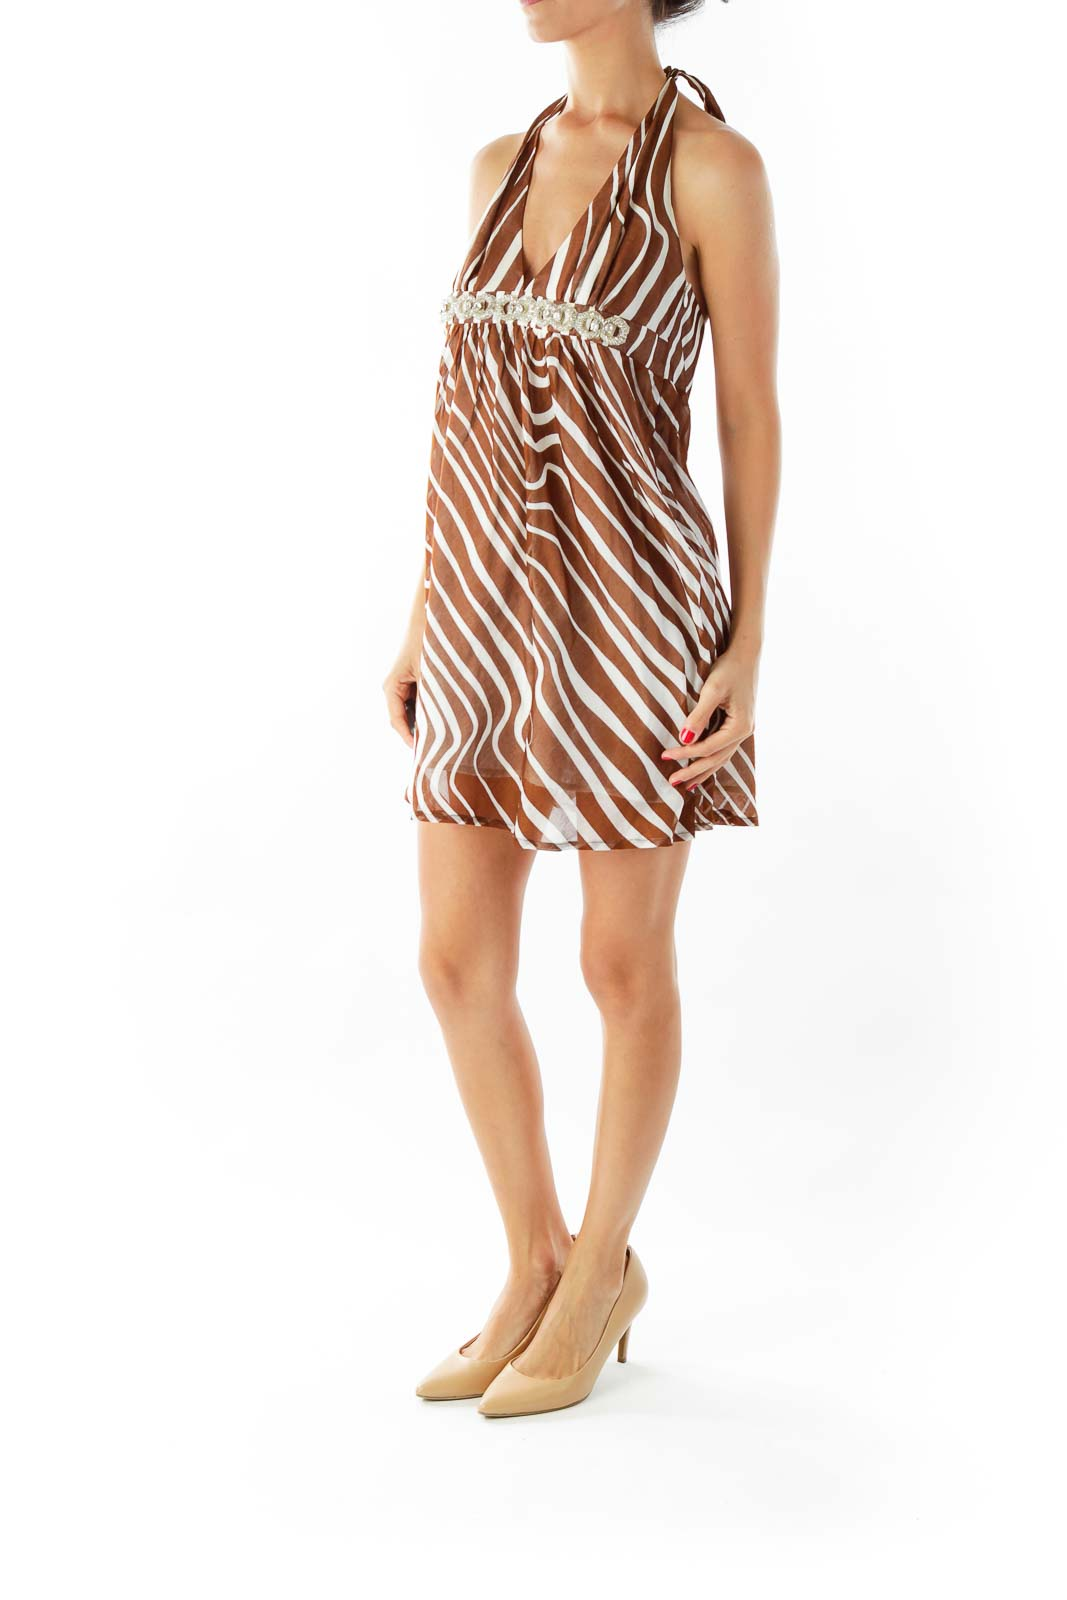 Brown Creme Zebra Print Halter Dress